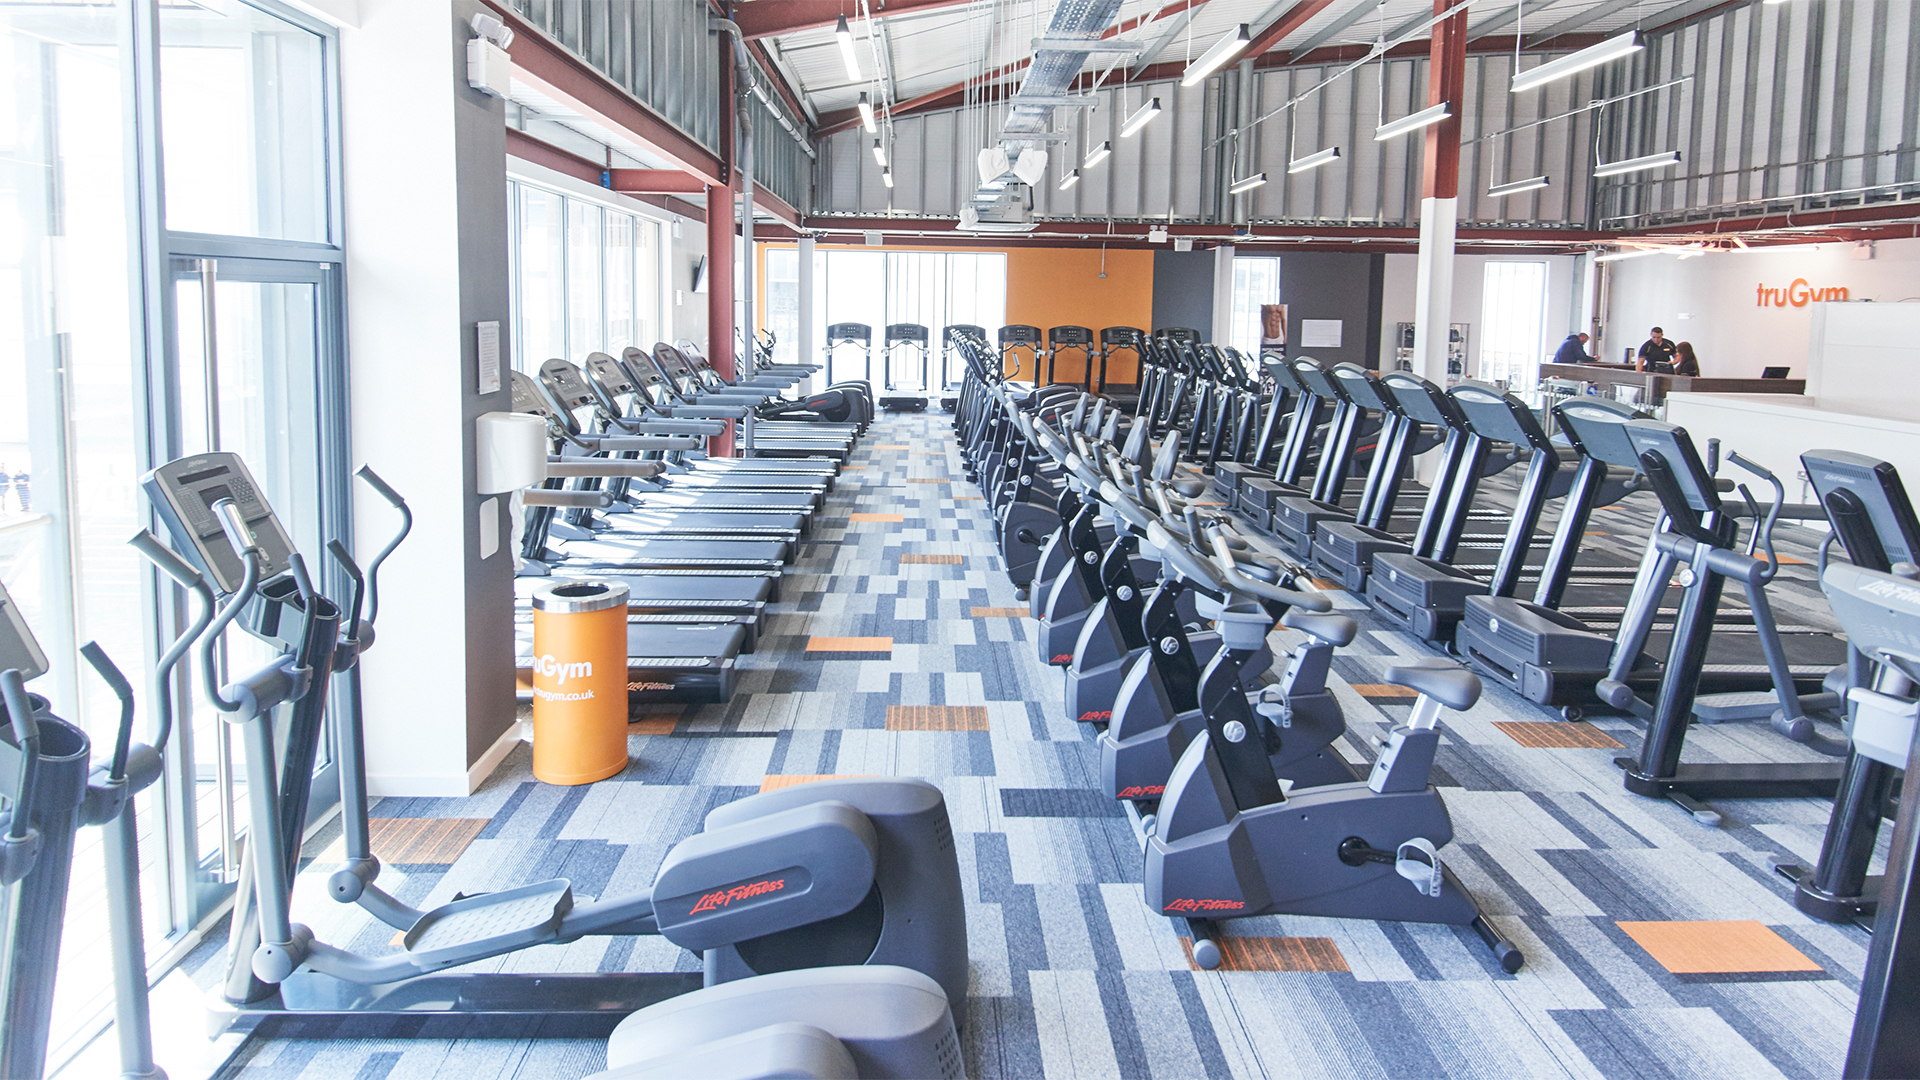 Cheap gym in uxbridge from £ per month trugym